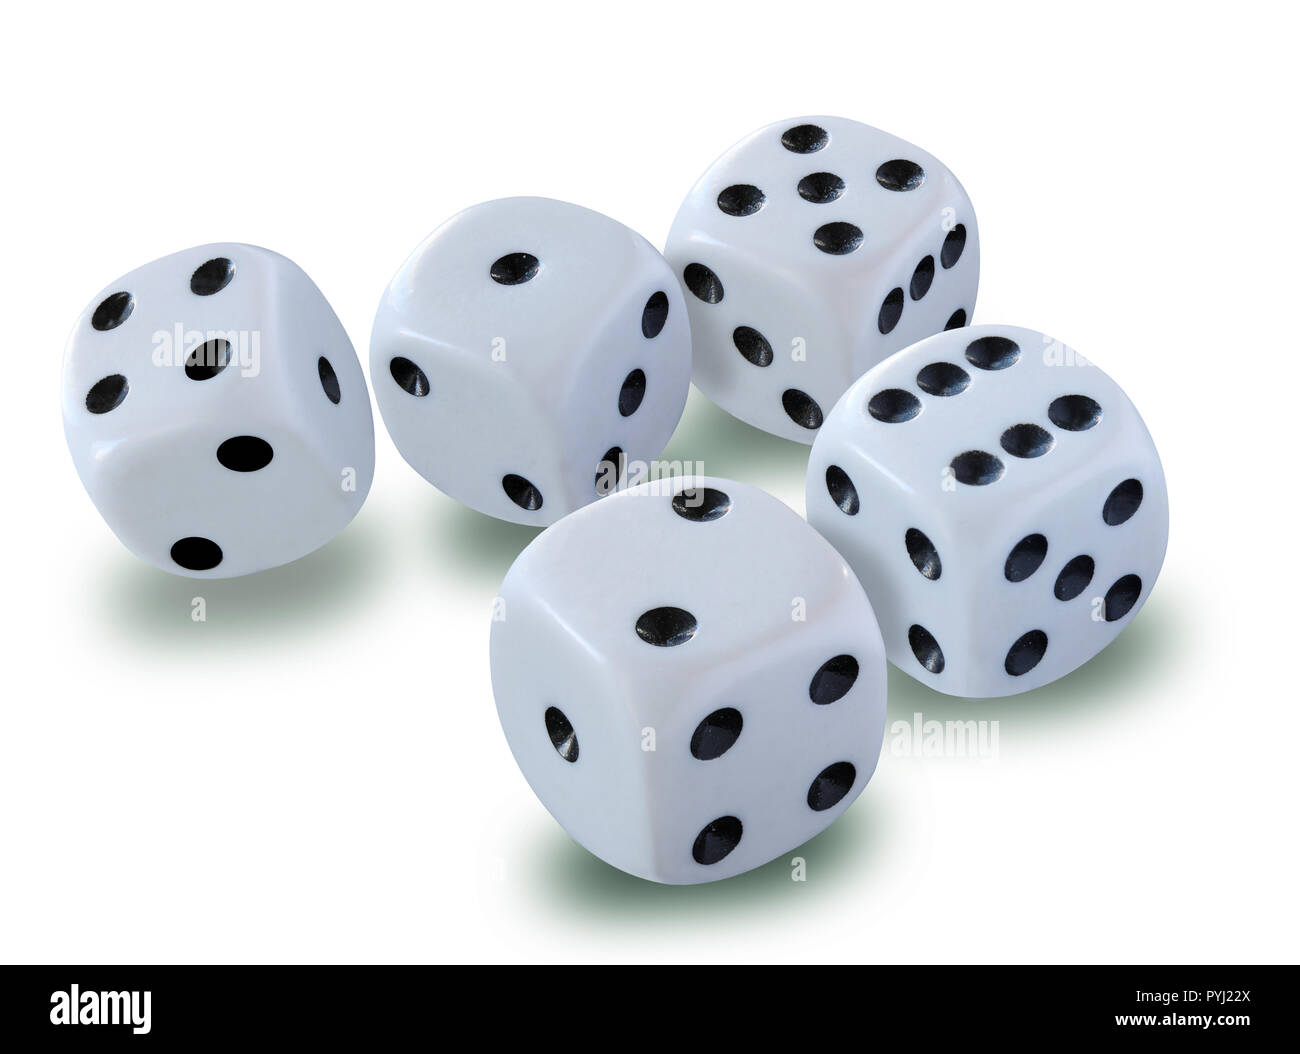 White dices on white background with drop shadows - thrown in a craps game, yatsy or any kind of dice game - Stock Image